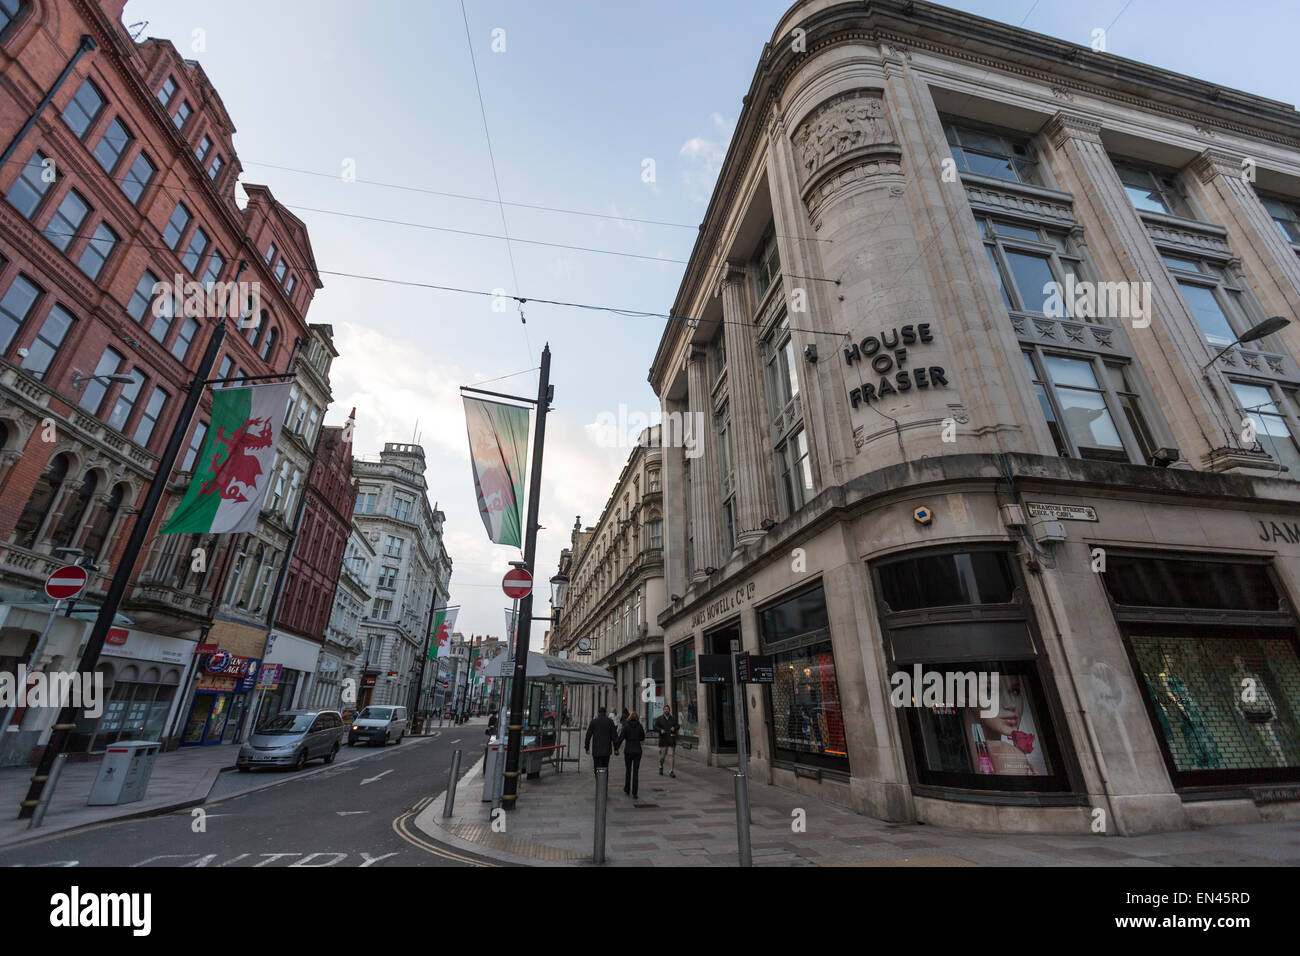 House of Fraser, Department Store, in 14-18 Mary St., Cardiff - Stock Image